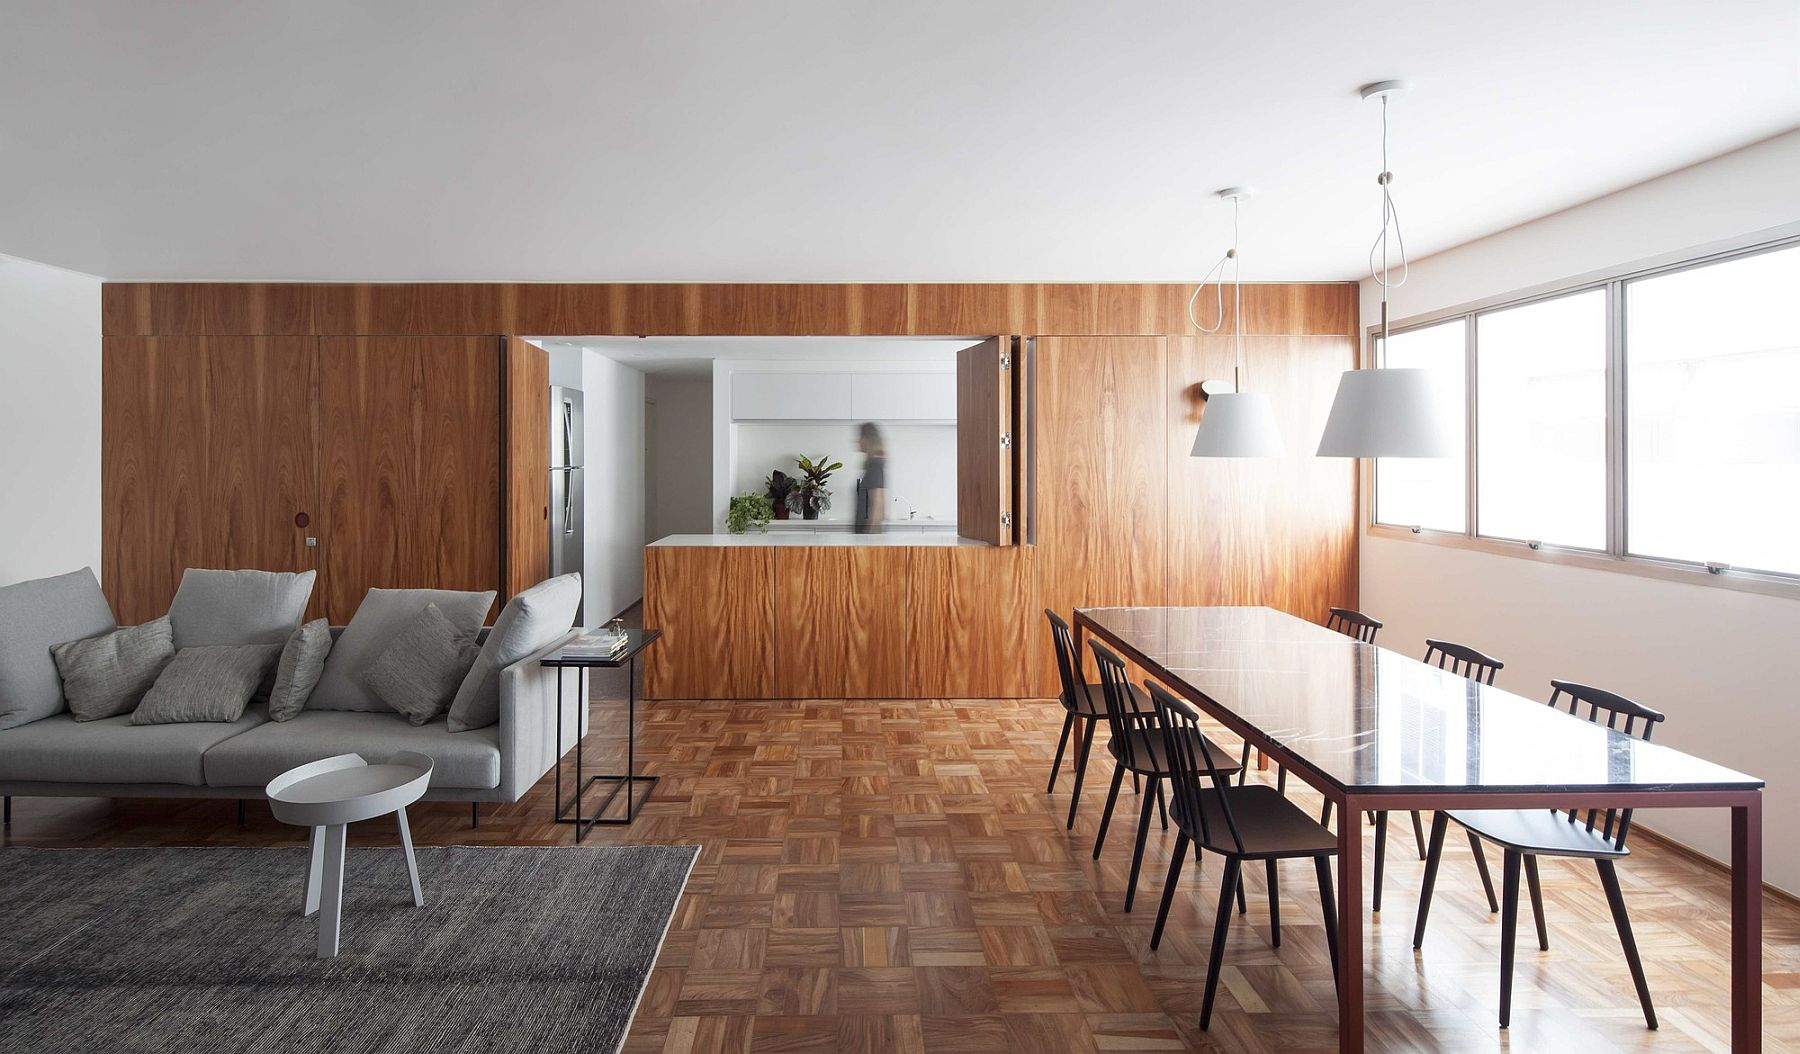 Expansive-wooden-panelling-creates-a-private-bedroom-and-a-fabulous-kitchen